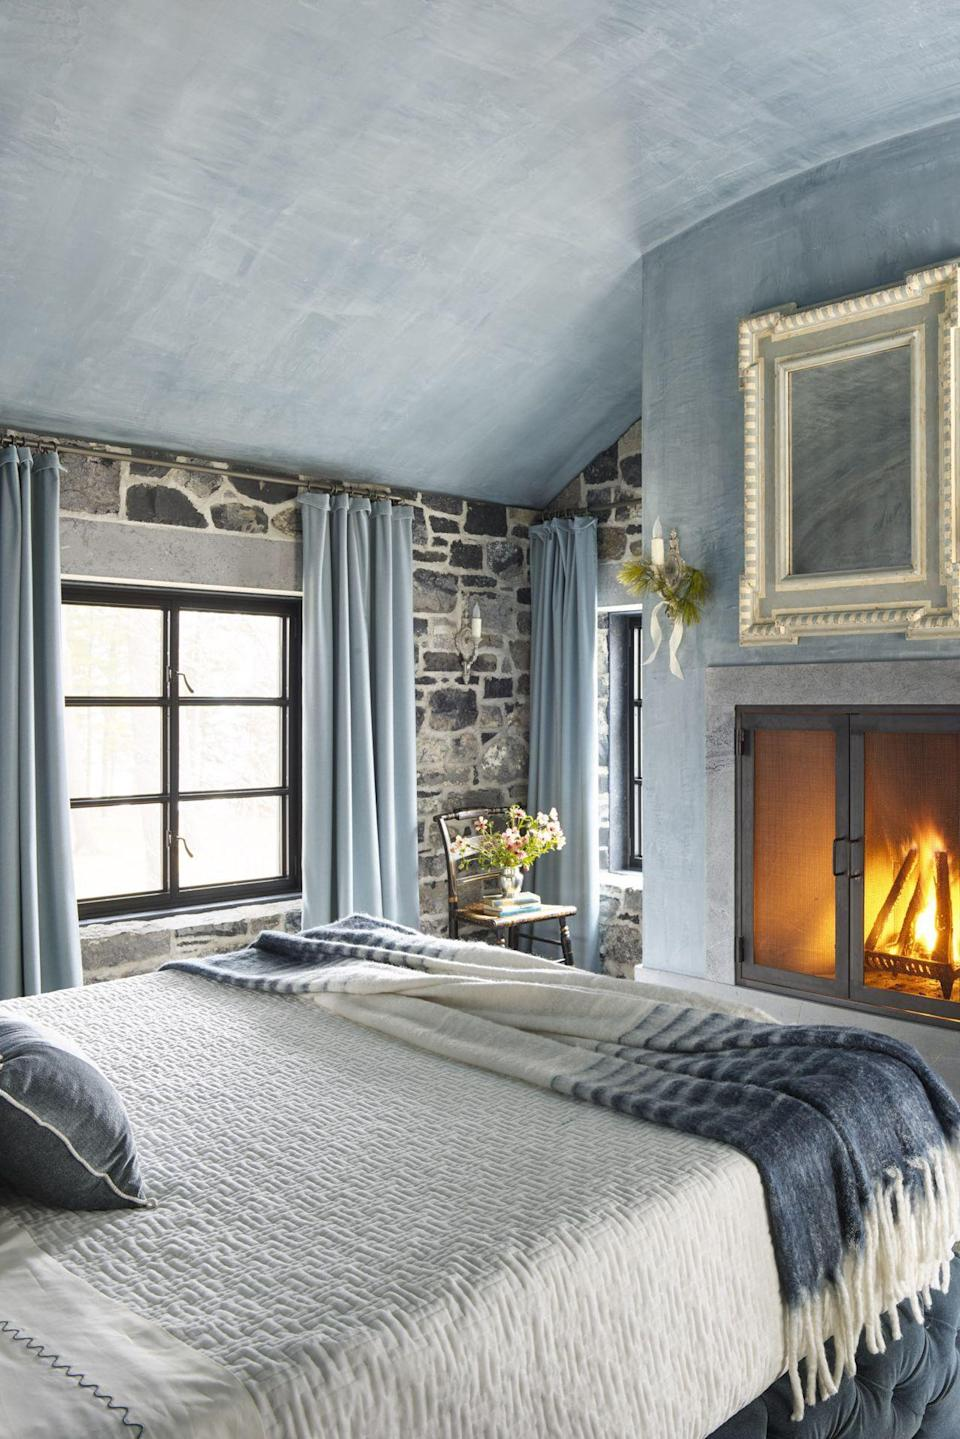 <p>Nothing makes a home homier than a roaring fireplace. If you're lucky enough to have one in the main bedroom, beautify the area around it with a large mirror. We also love the textured blue ceiling and accent wall—it adds a softer touch to the rustic stone wall. </p>